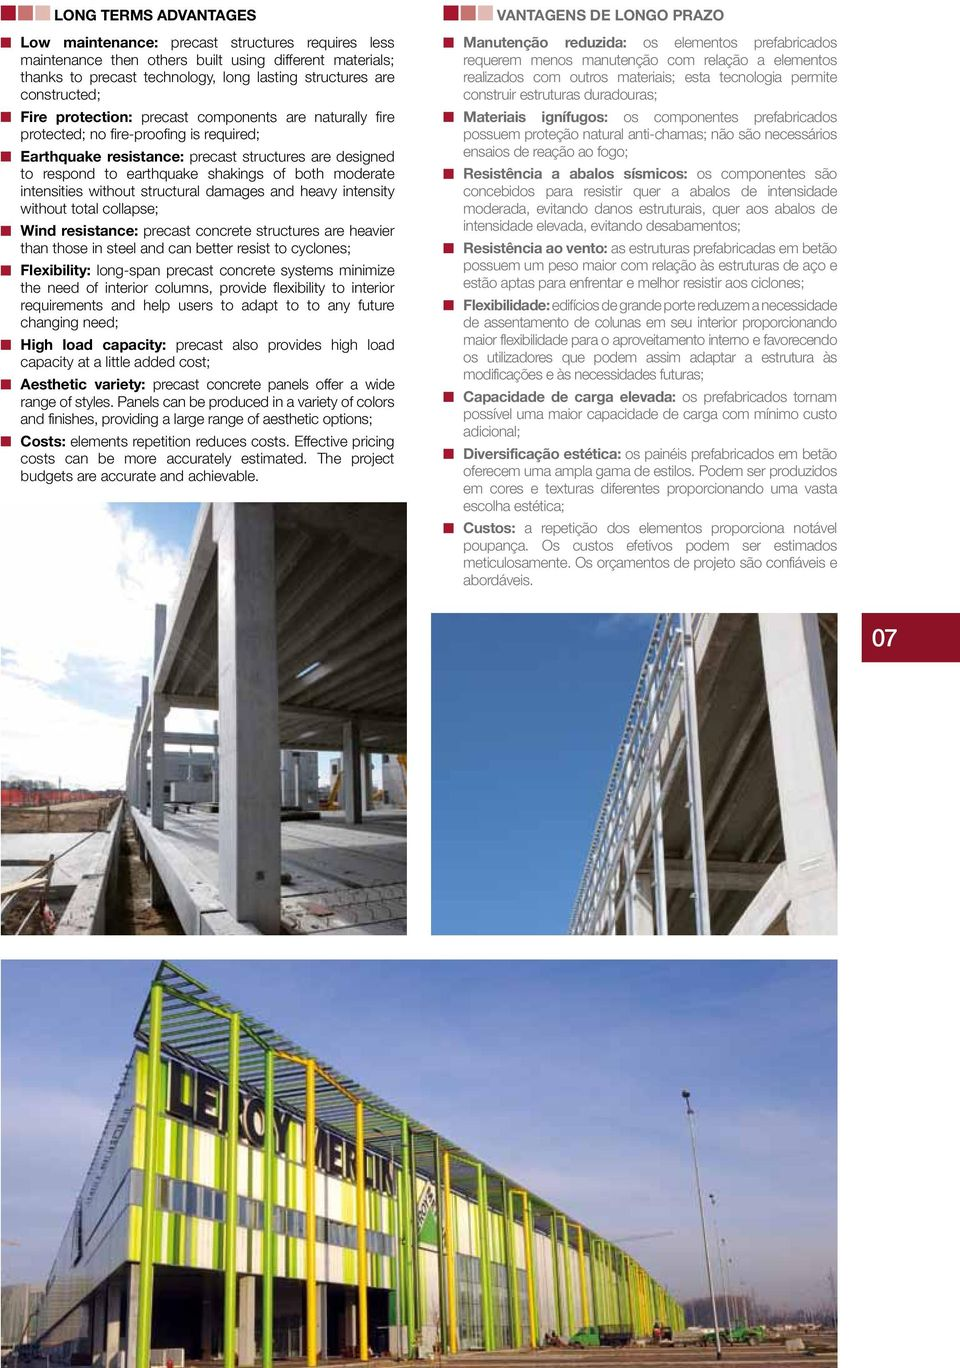 moderate intensities without structural damages and heavy intensity without total collapse; Wind resistance: precast concrete structures are heavier than those in steel and can better resist to